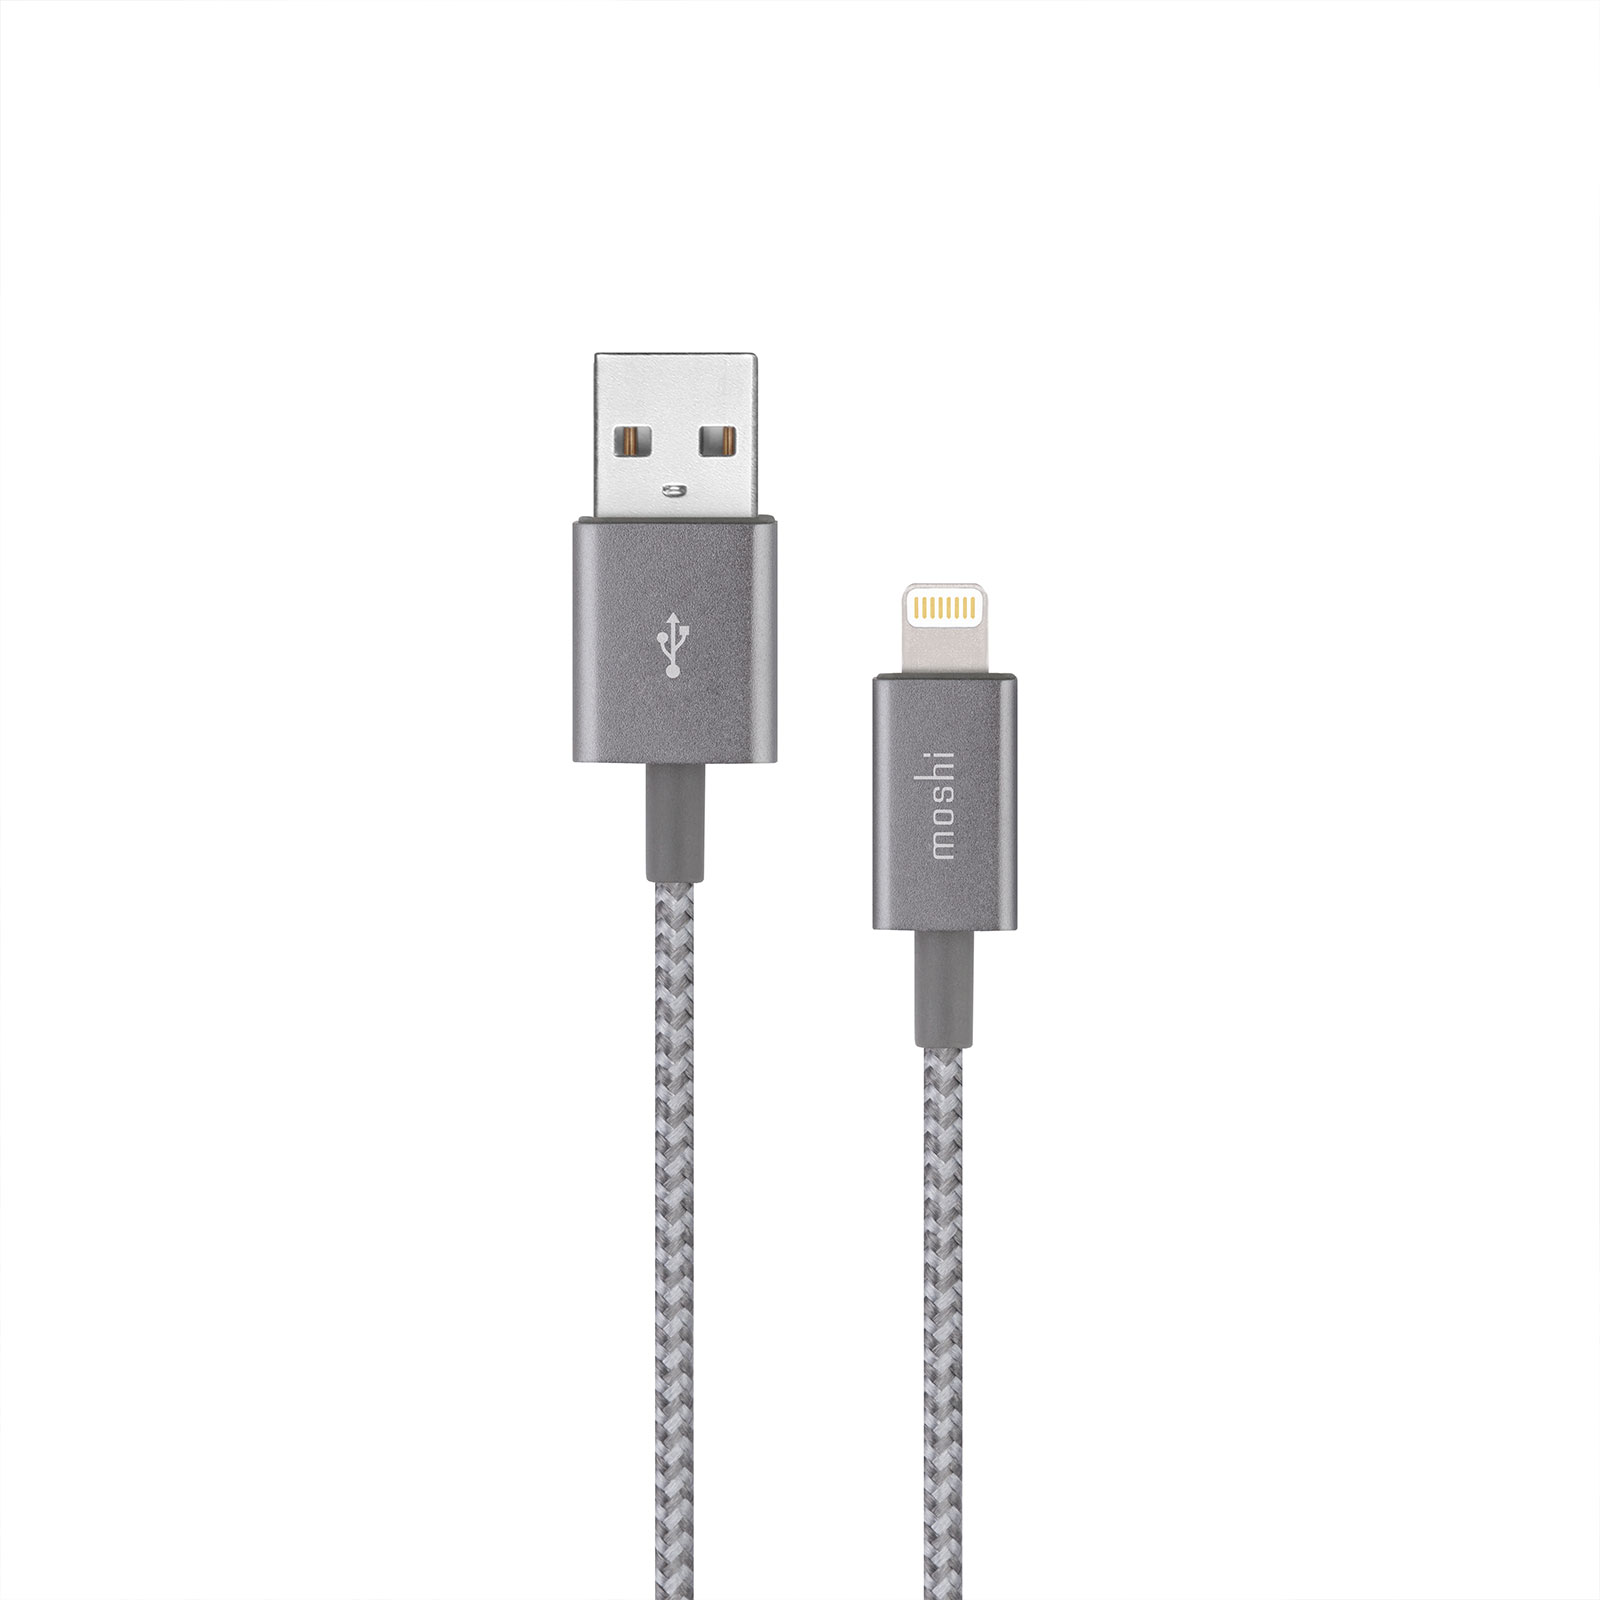 Integra™ USB-A to Lightning Charge/Sync Cable 4 ft (1.2 m)-2-thumbnail